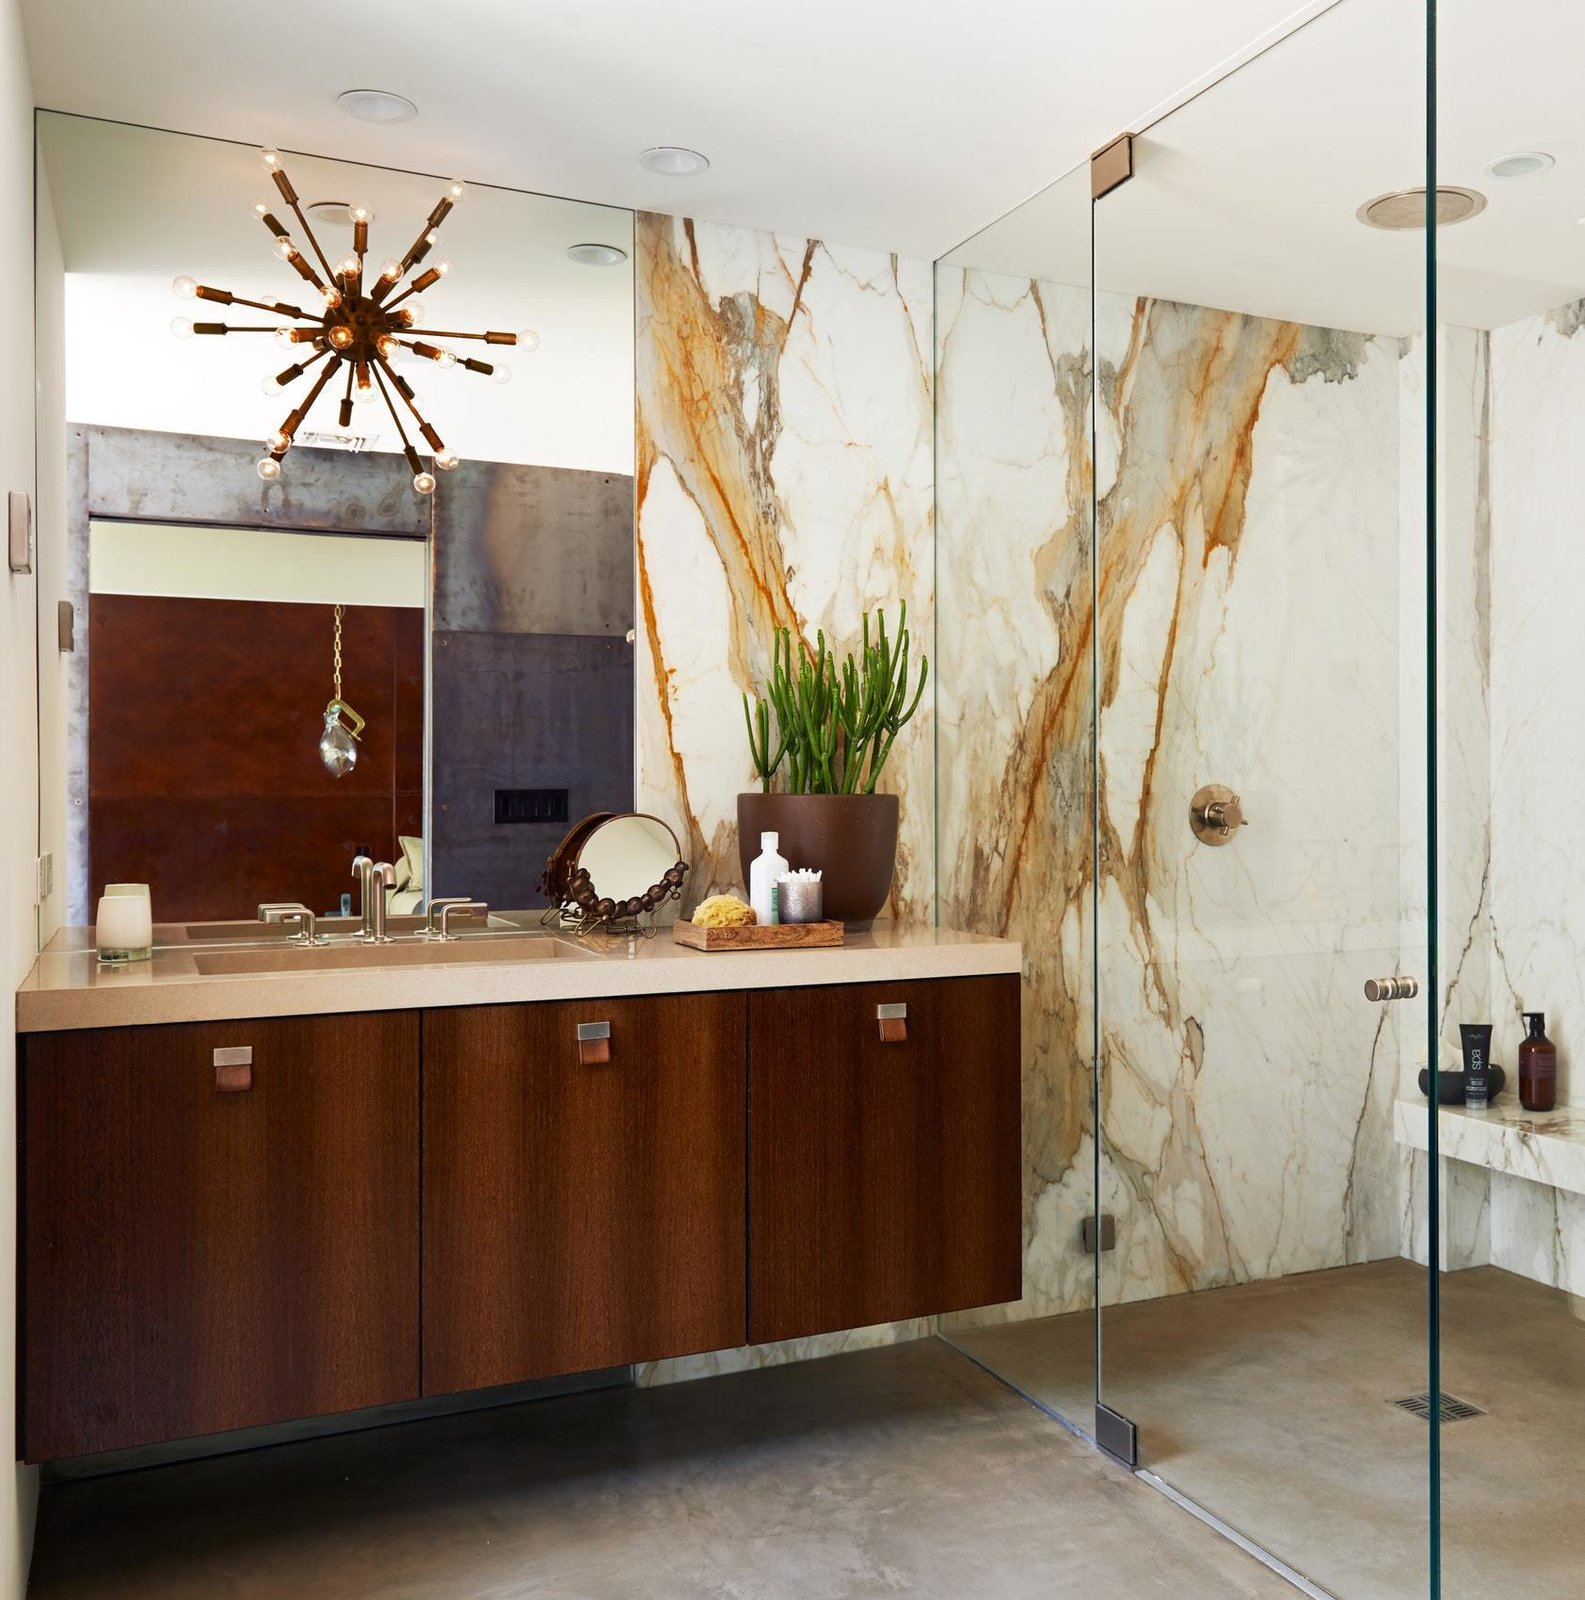 Bath Room, Full Shower, Enclosed Shower, Recessed Lighting, Ceiling Lighting, Drop In Sink, and Concrete Floor  On the Rocks